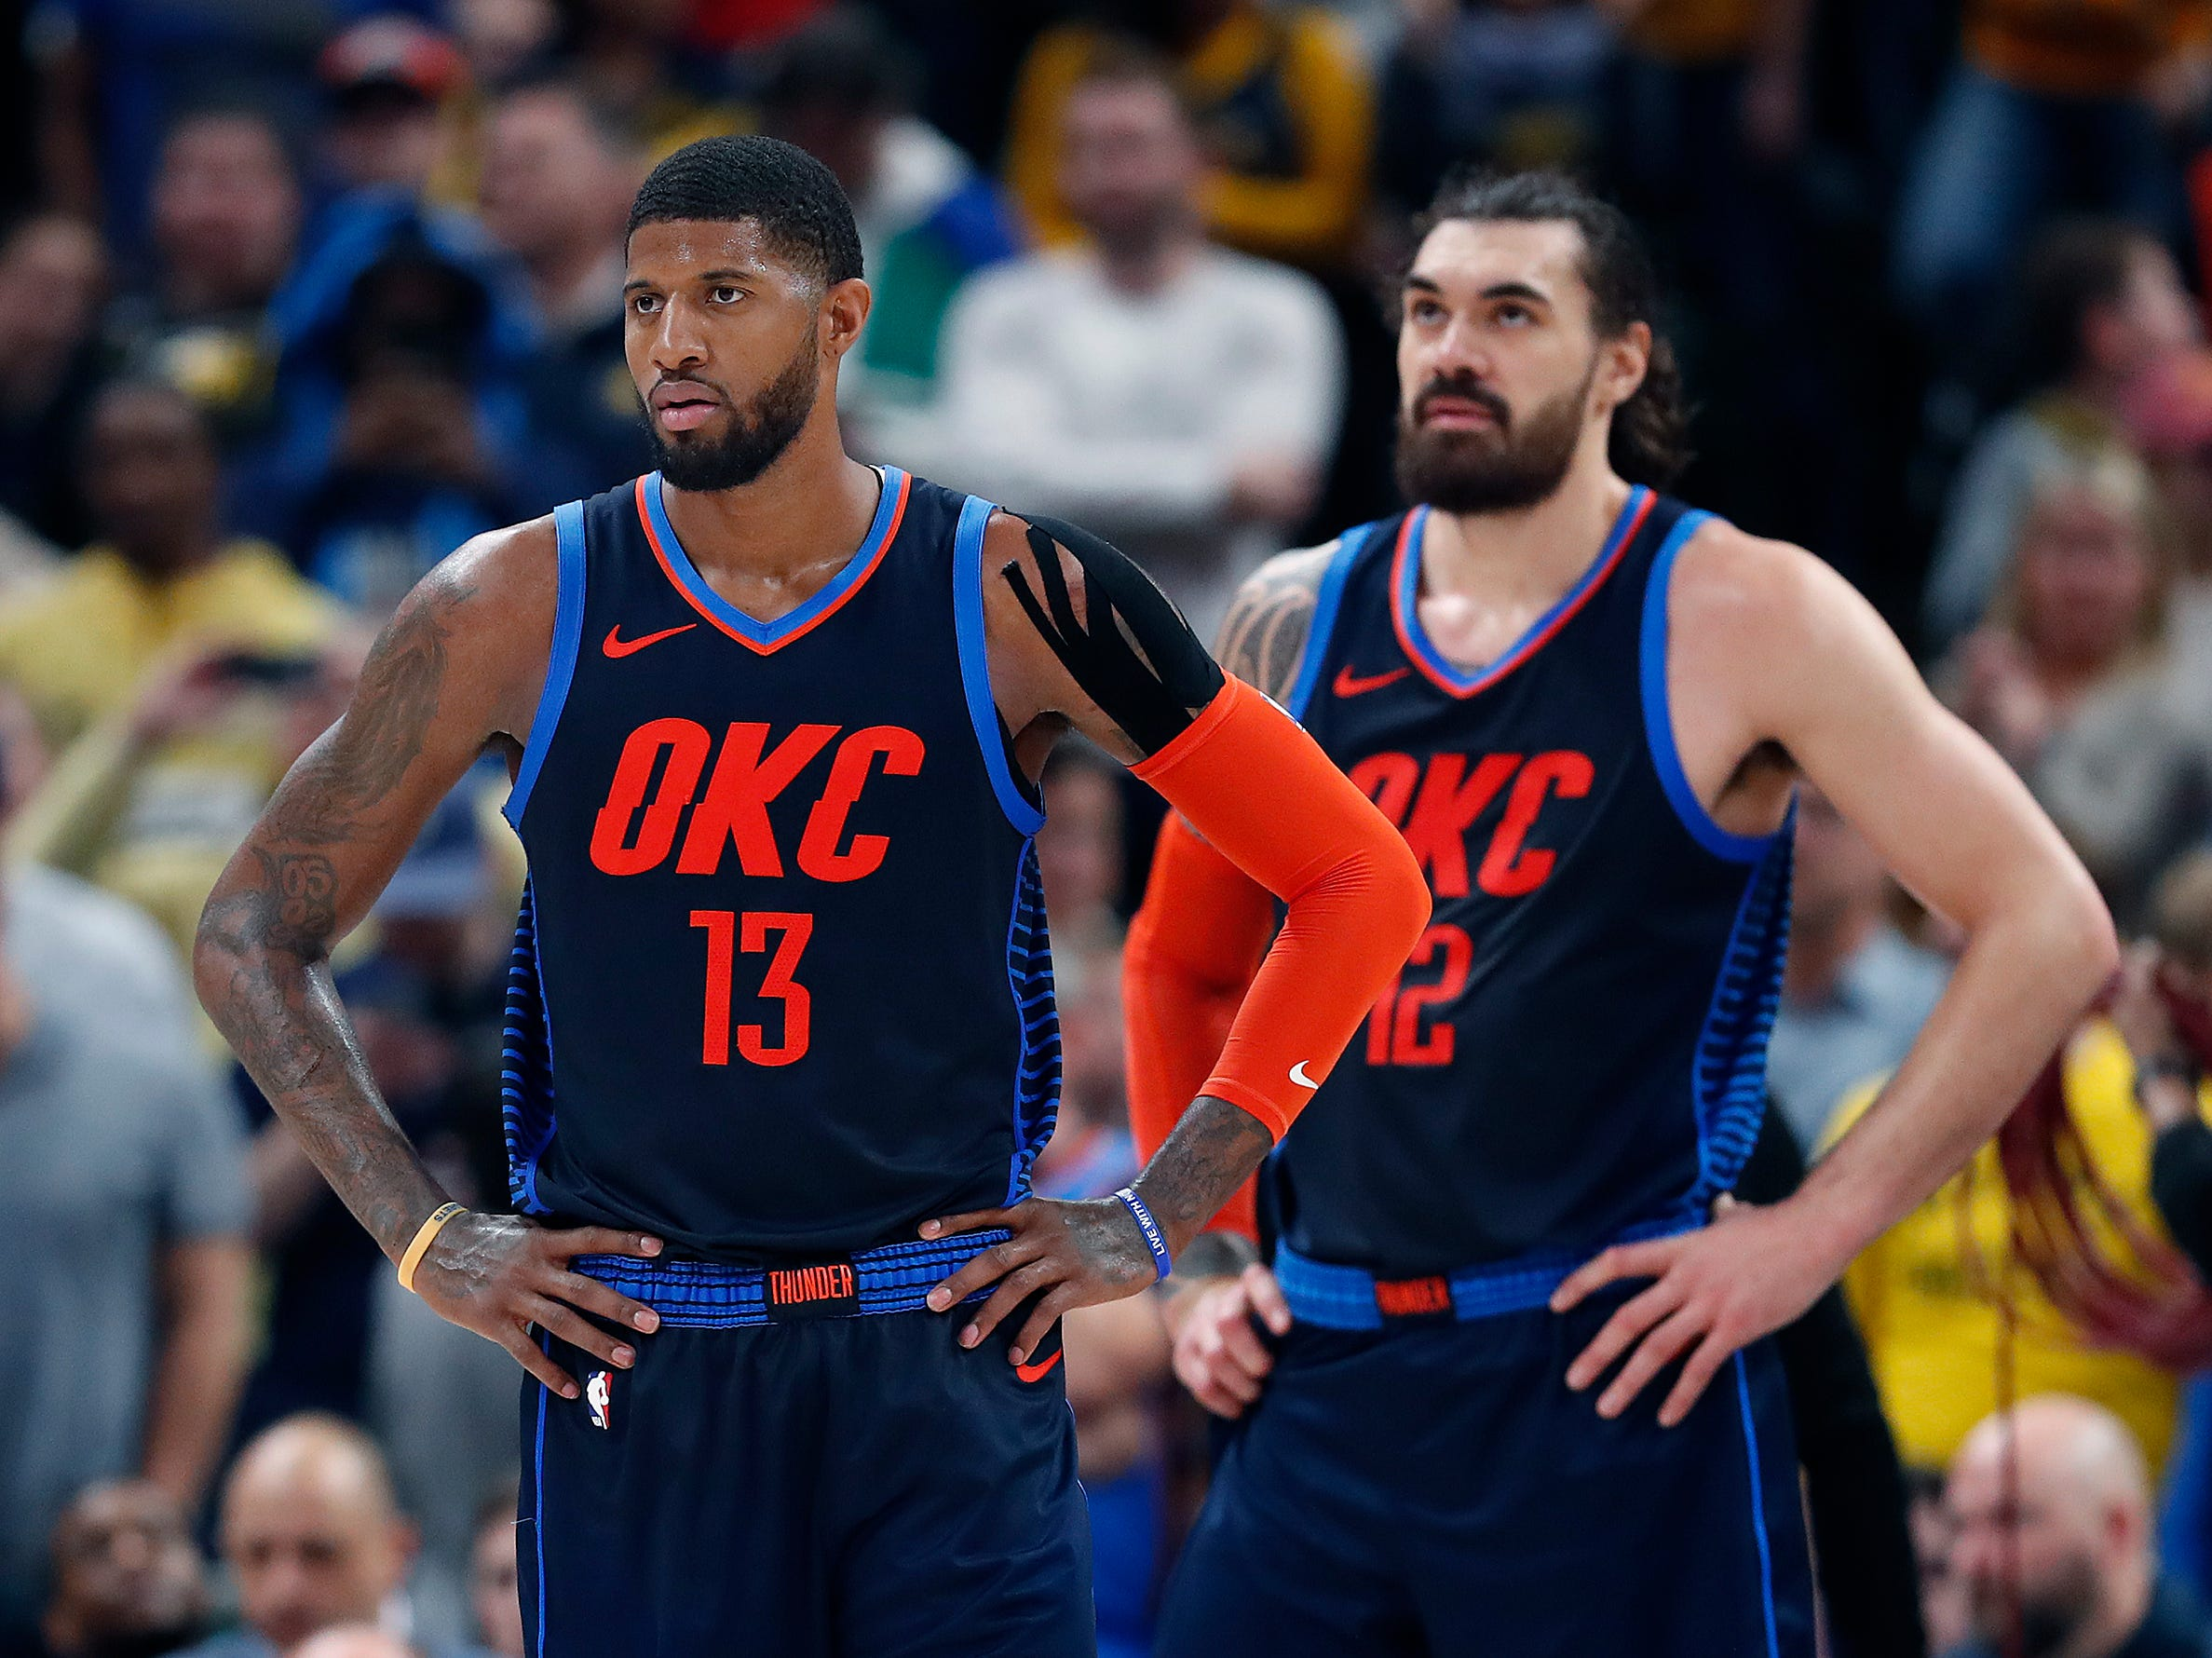 Dejected Oklahoma City Thunder forward Paul George (13) and Steven Adams (12) late in the second half of their game at Bankers Life Fieldhouse on Thursday, Mar. 14, 2019. The Pacers defeated the Thunder 108-106.